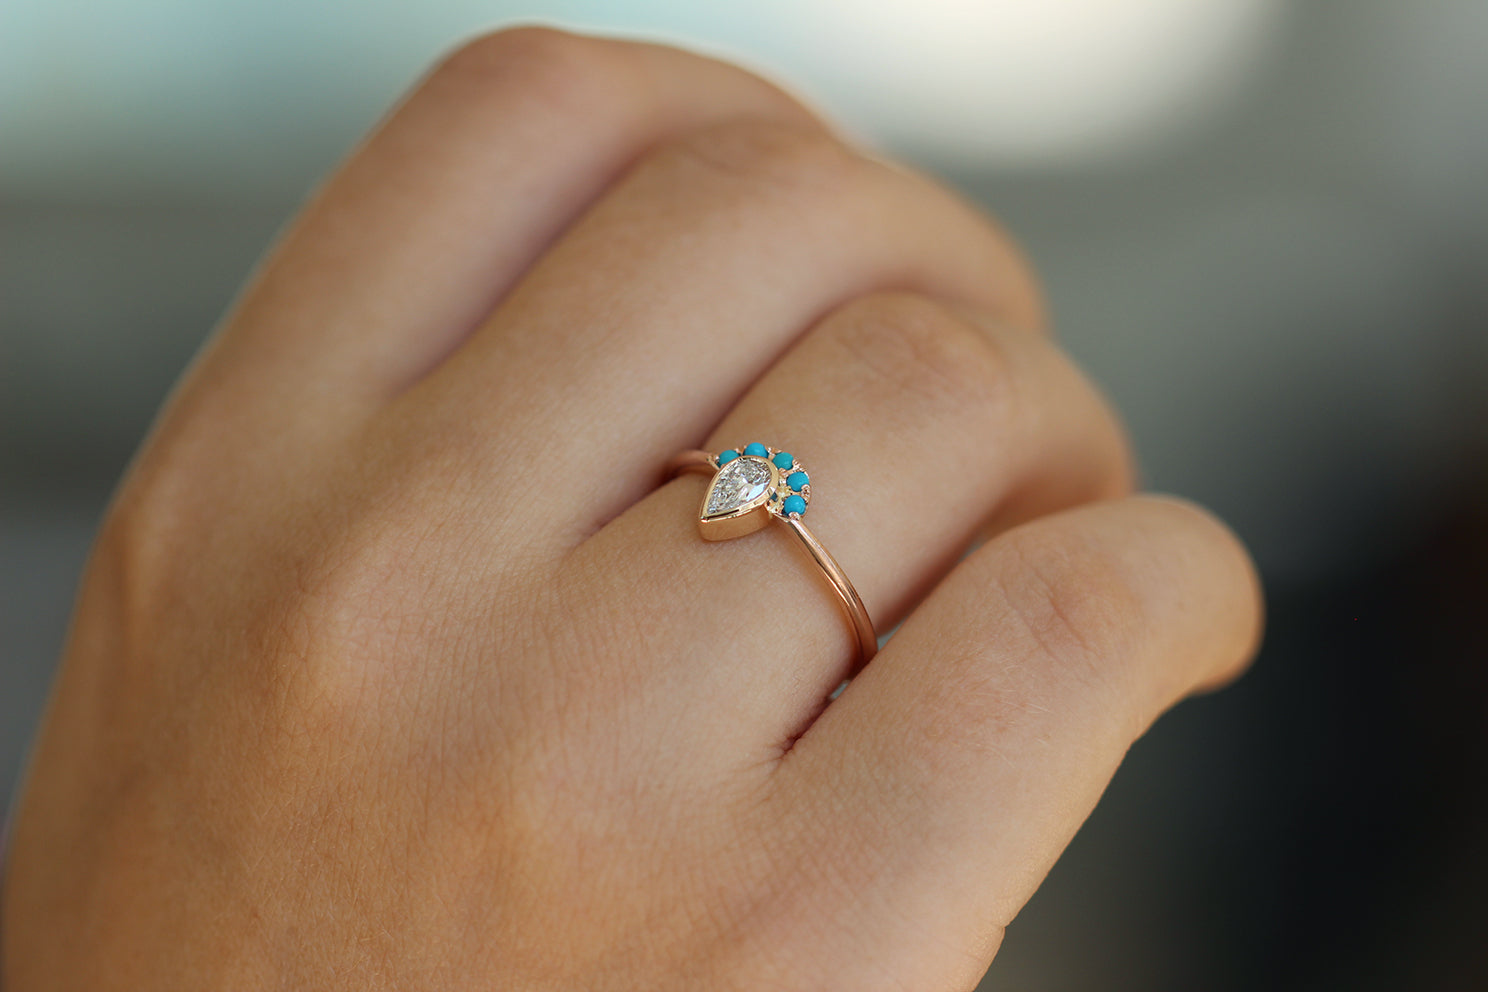 Pear Cut Diamond Ring - Turquoise Crown Diamond Ring Side View on Hand